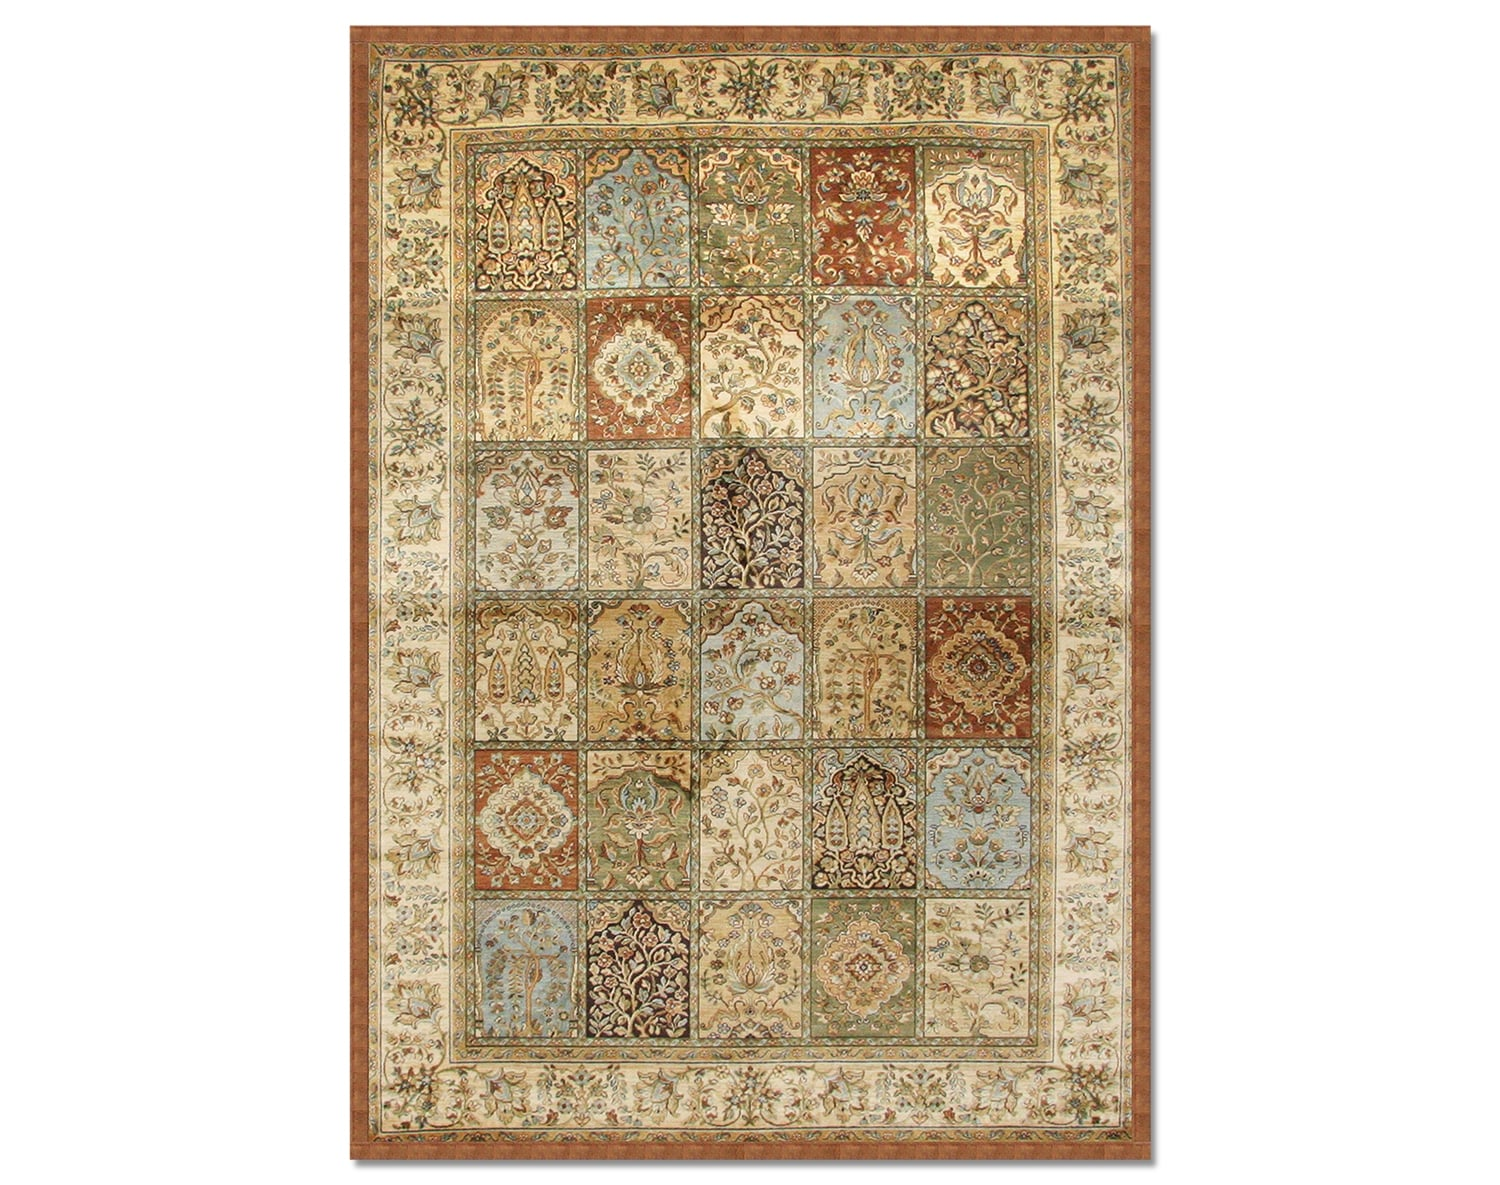 The Sonoma Mosaic Collection